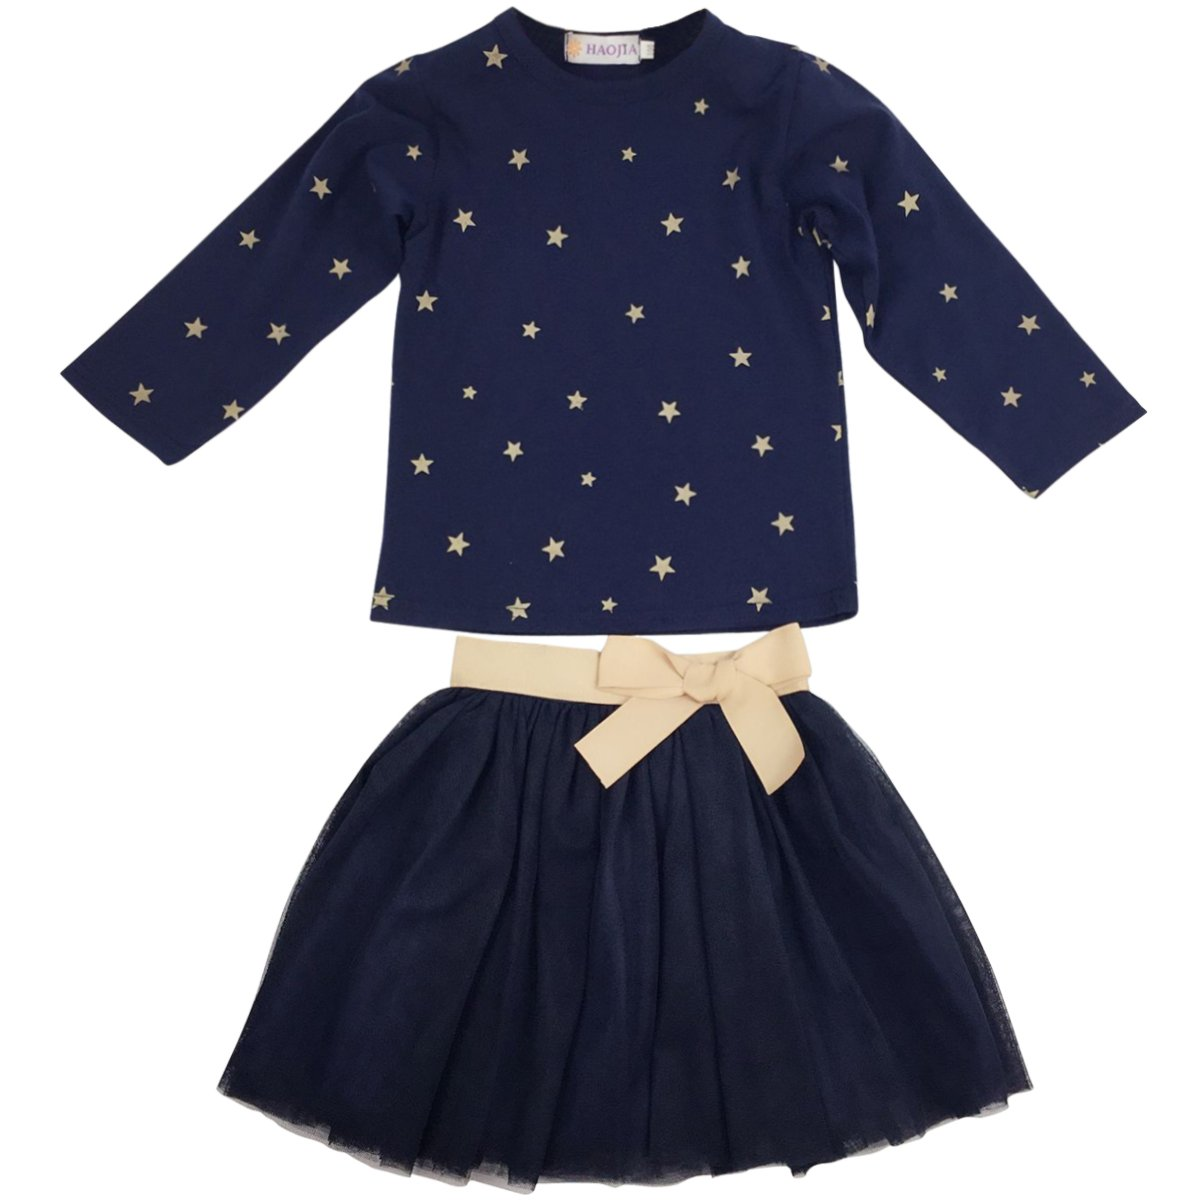 Jastore Girls Blue Cartoon Clothing Sets Long Sleeve Top+Tutu Skirt Kids Clothes Clothing010031